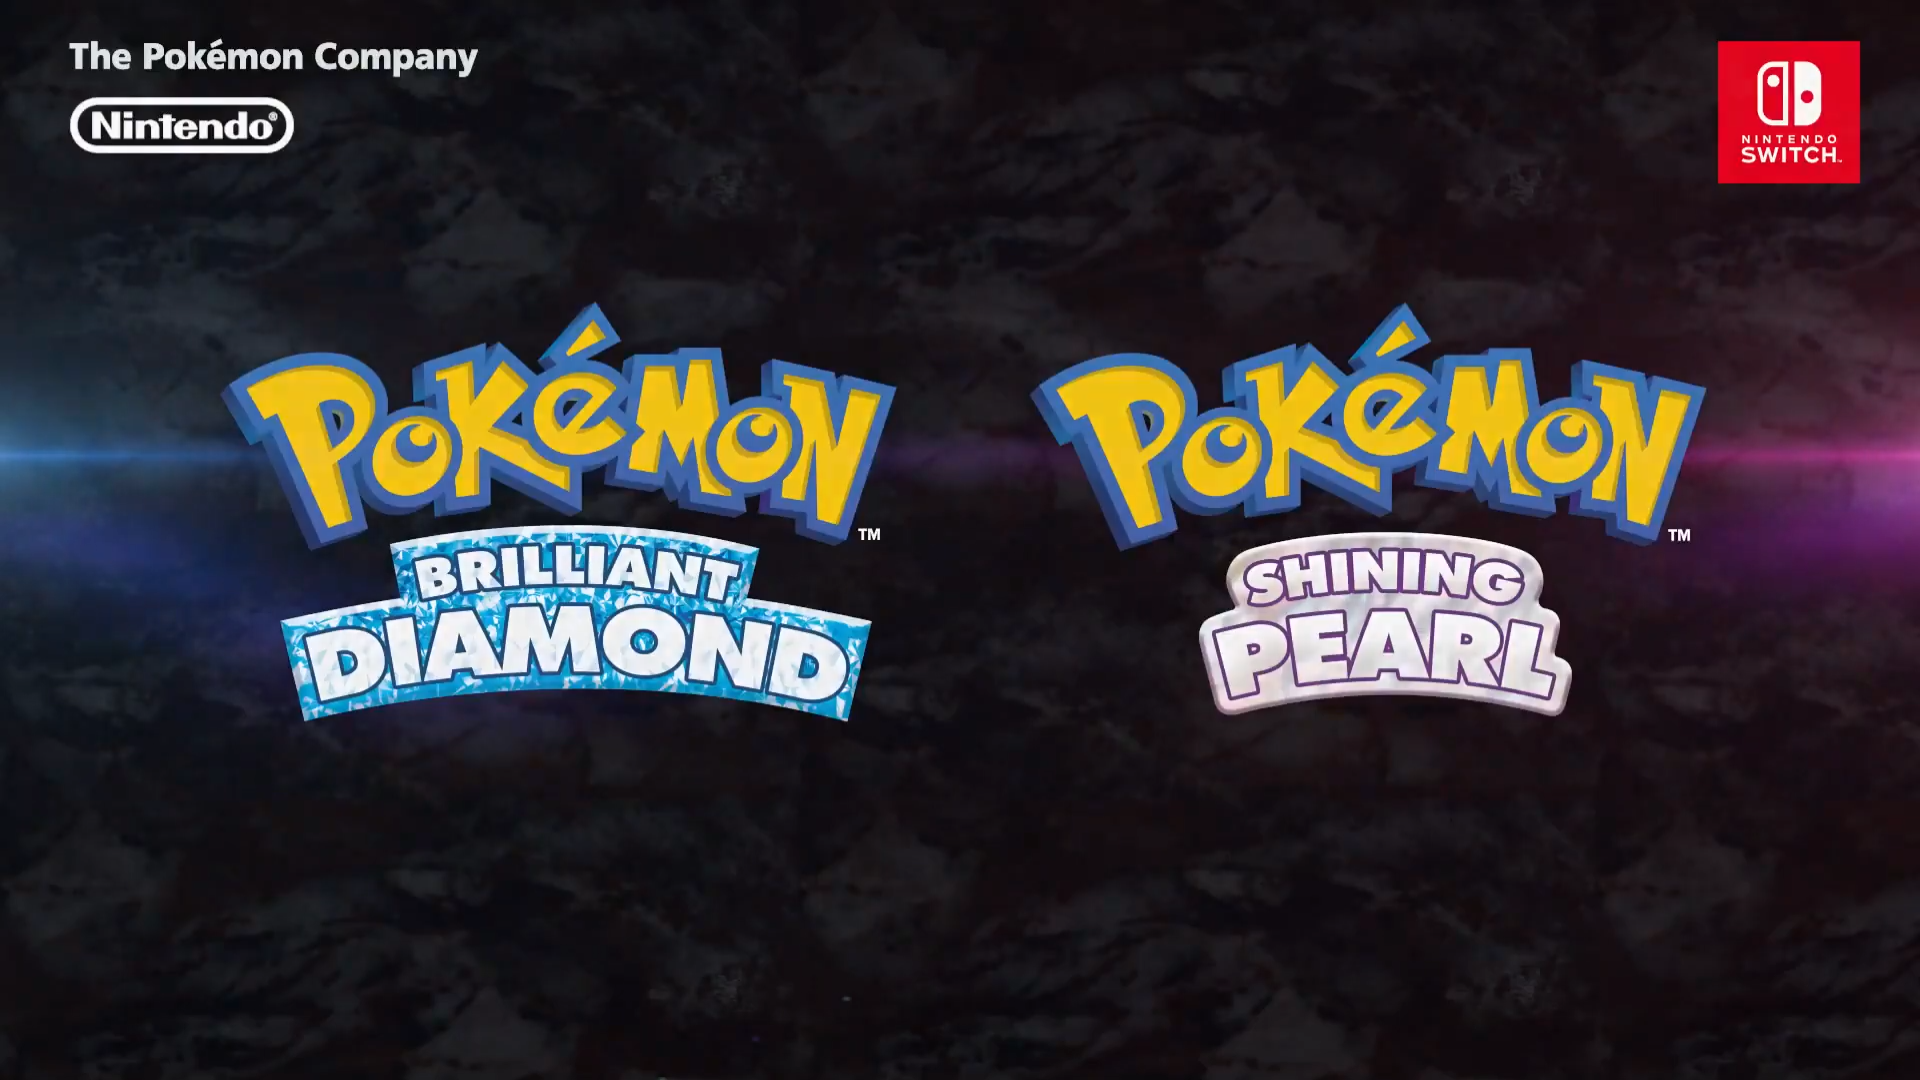 Pokémon Brilliant Diamond & Pokémon Shining Pearl